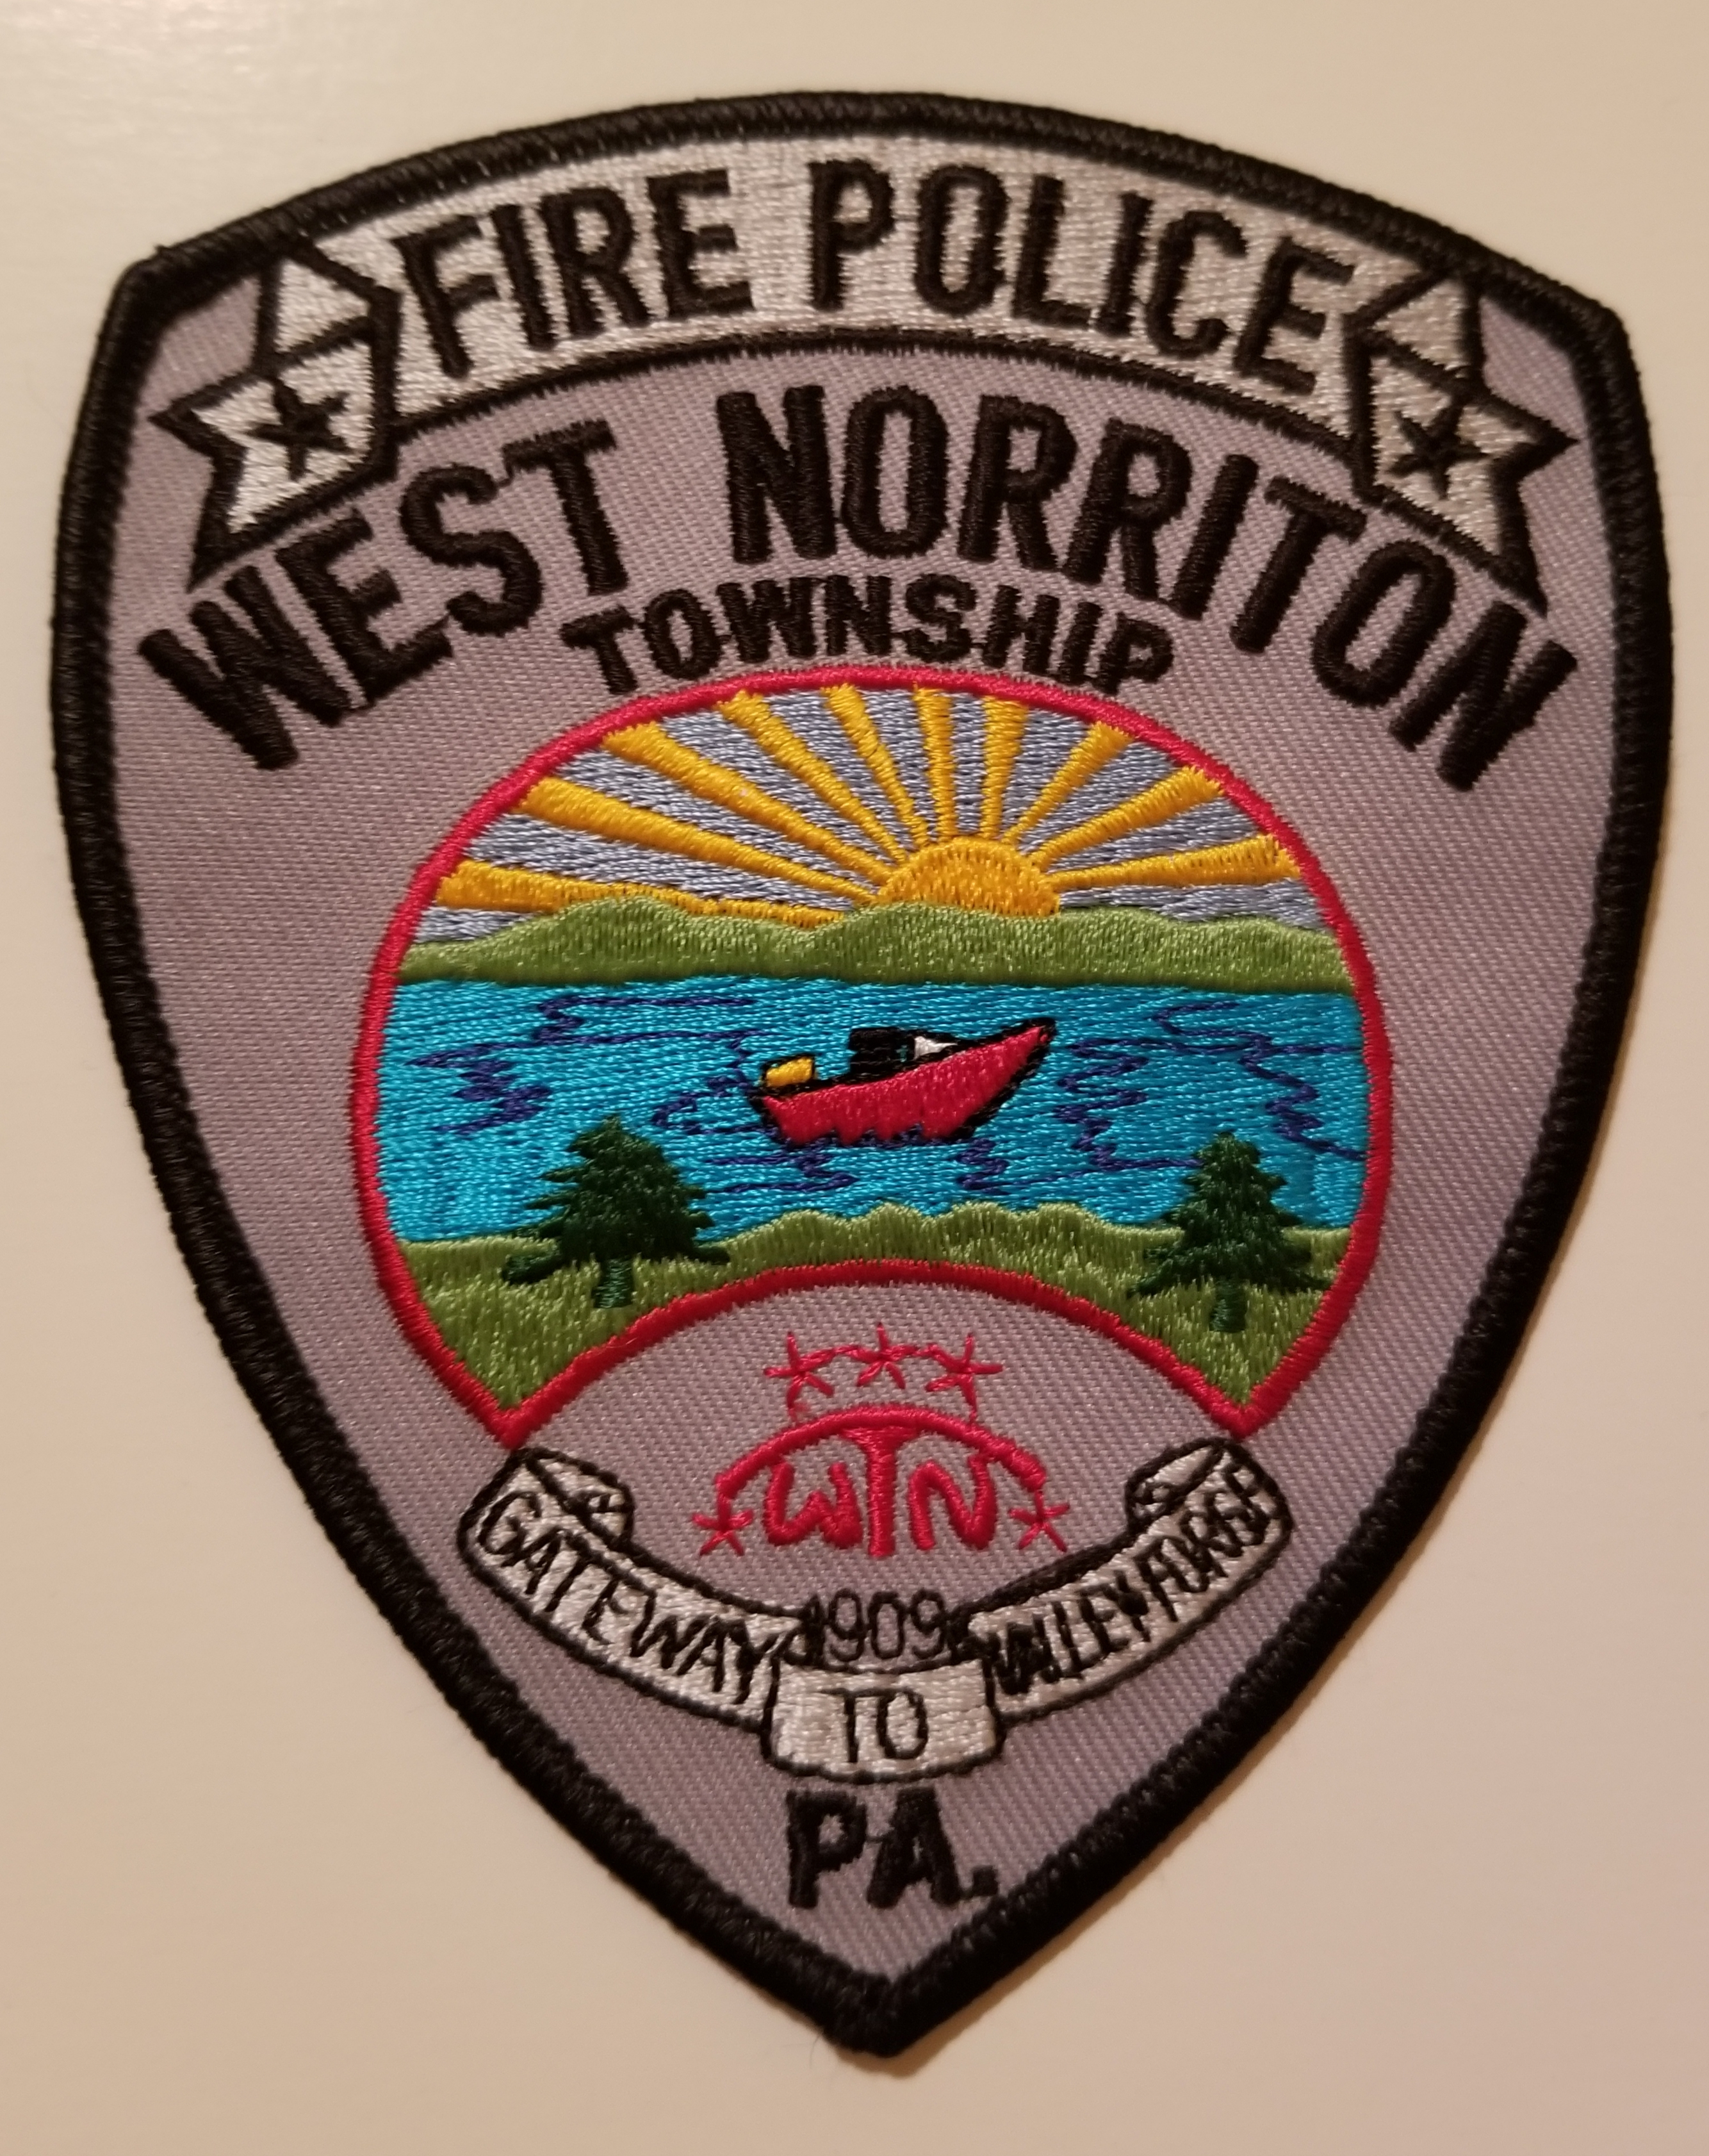 West Norriton Township Fire Police PA